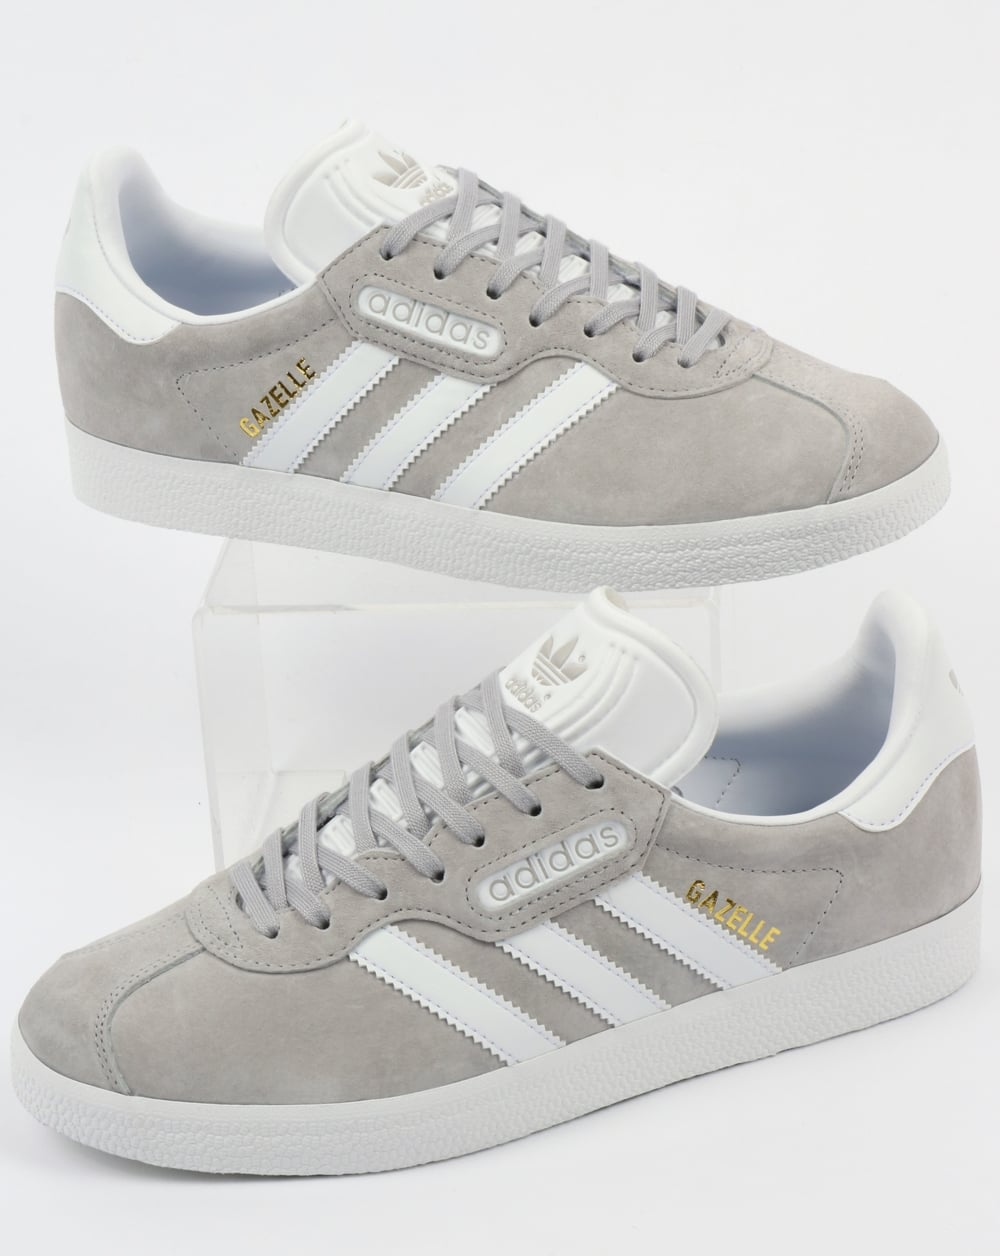 pretty nice 2b144 48213 adidas Trainers Adidas Gazelle Super Trainers Grey White